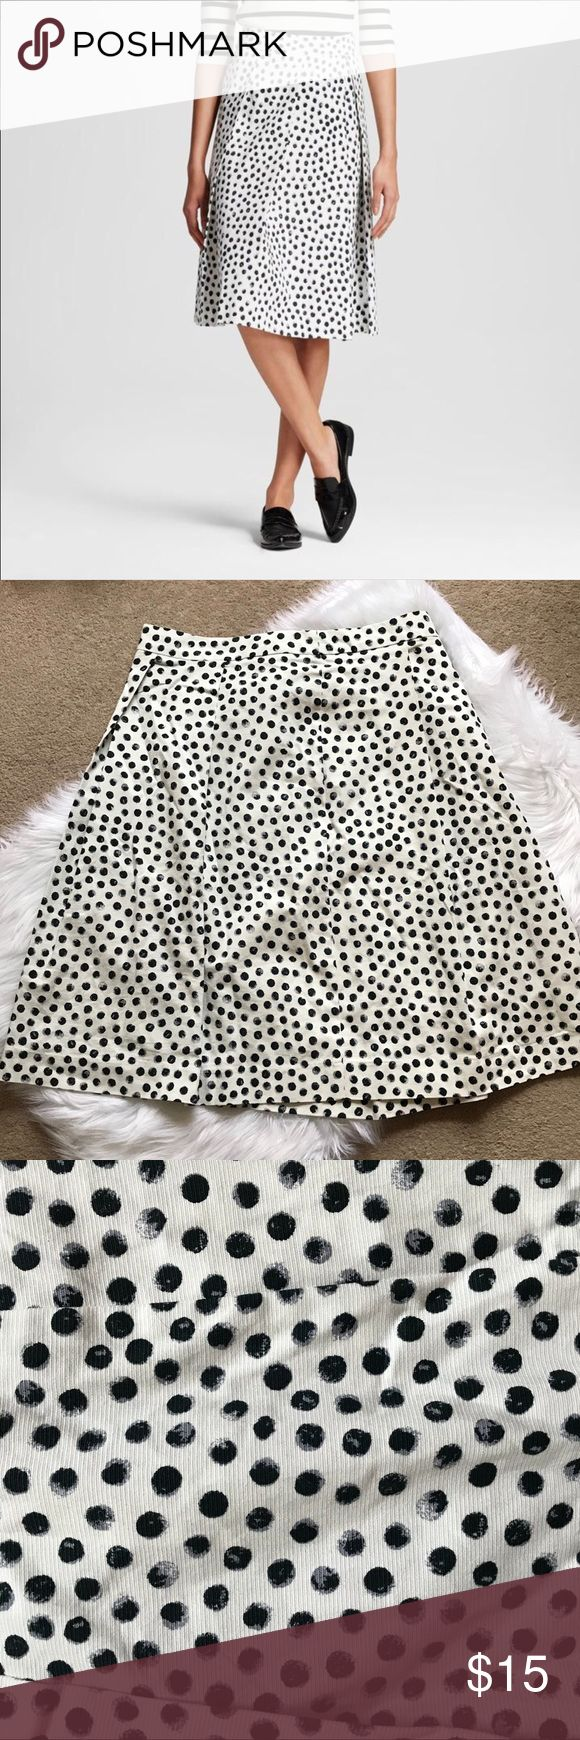 """Who What Wear Polka Dot Skirt Sz 14 Who What Wear Polka Dot Skirt.  Size 14.  Beautiful heavy fabric.  Winter white with black dots.  Zip closure. Waist laying flat measures 17.5"""".  When this skirt fit I wore it high waisted at my natural slimmest point of my waist. Who What Wear Skirts Midi"""